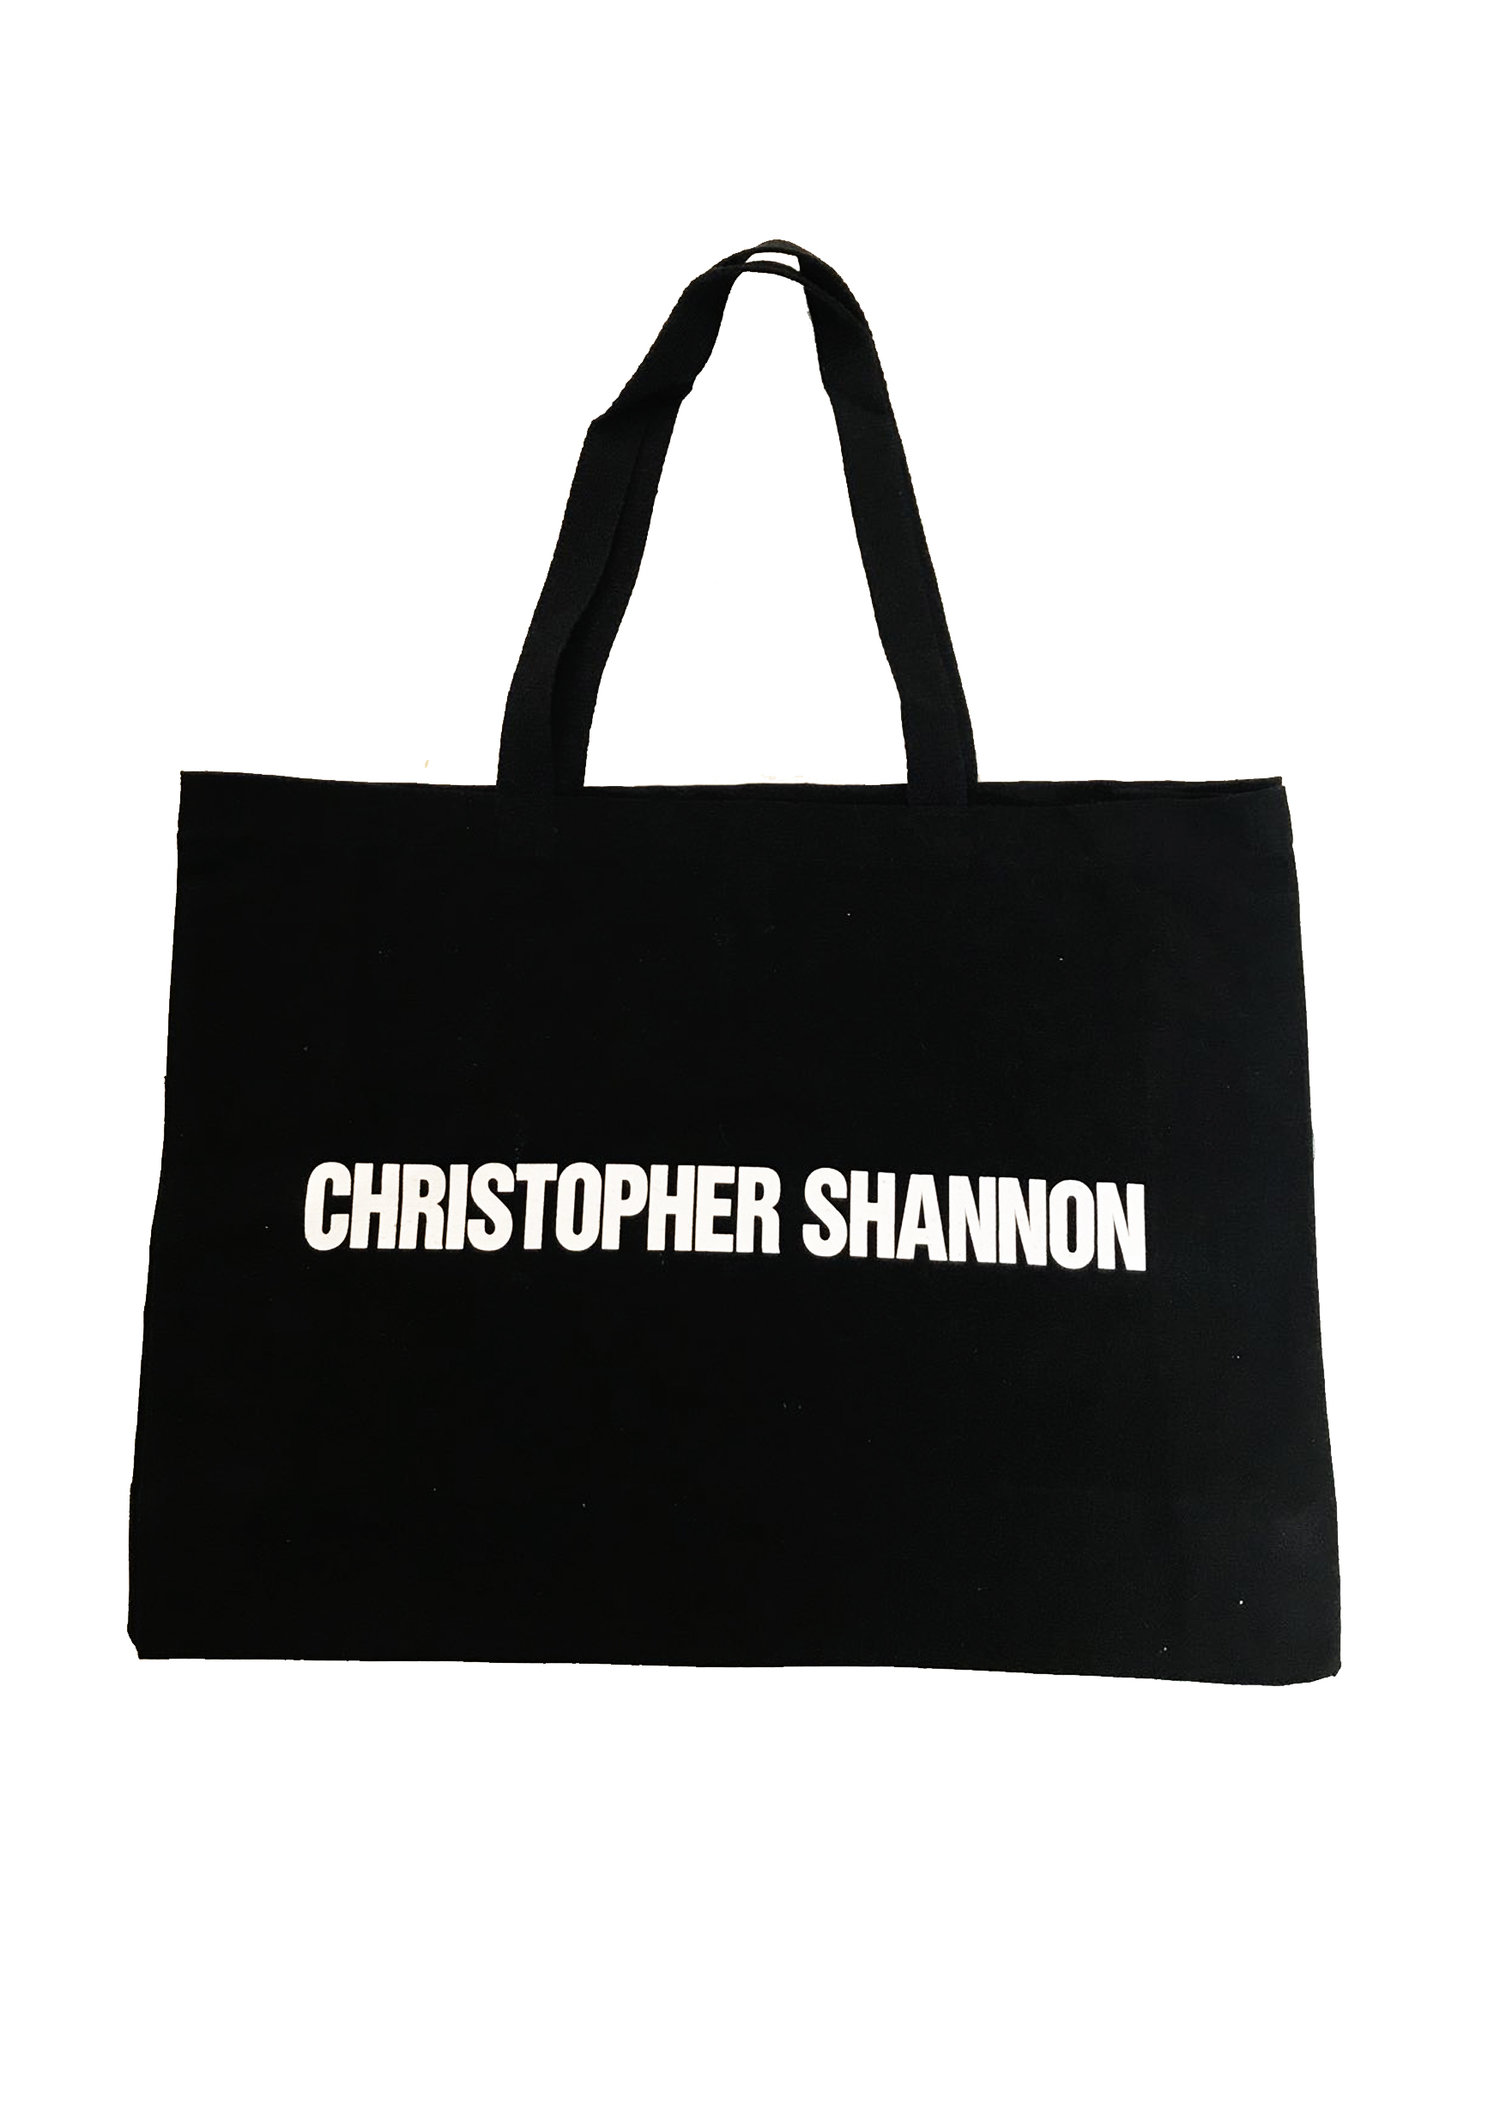 CHRISTOPHER SHANNON LARGE BLACK TOTE